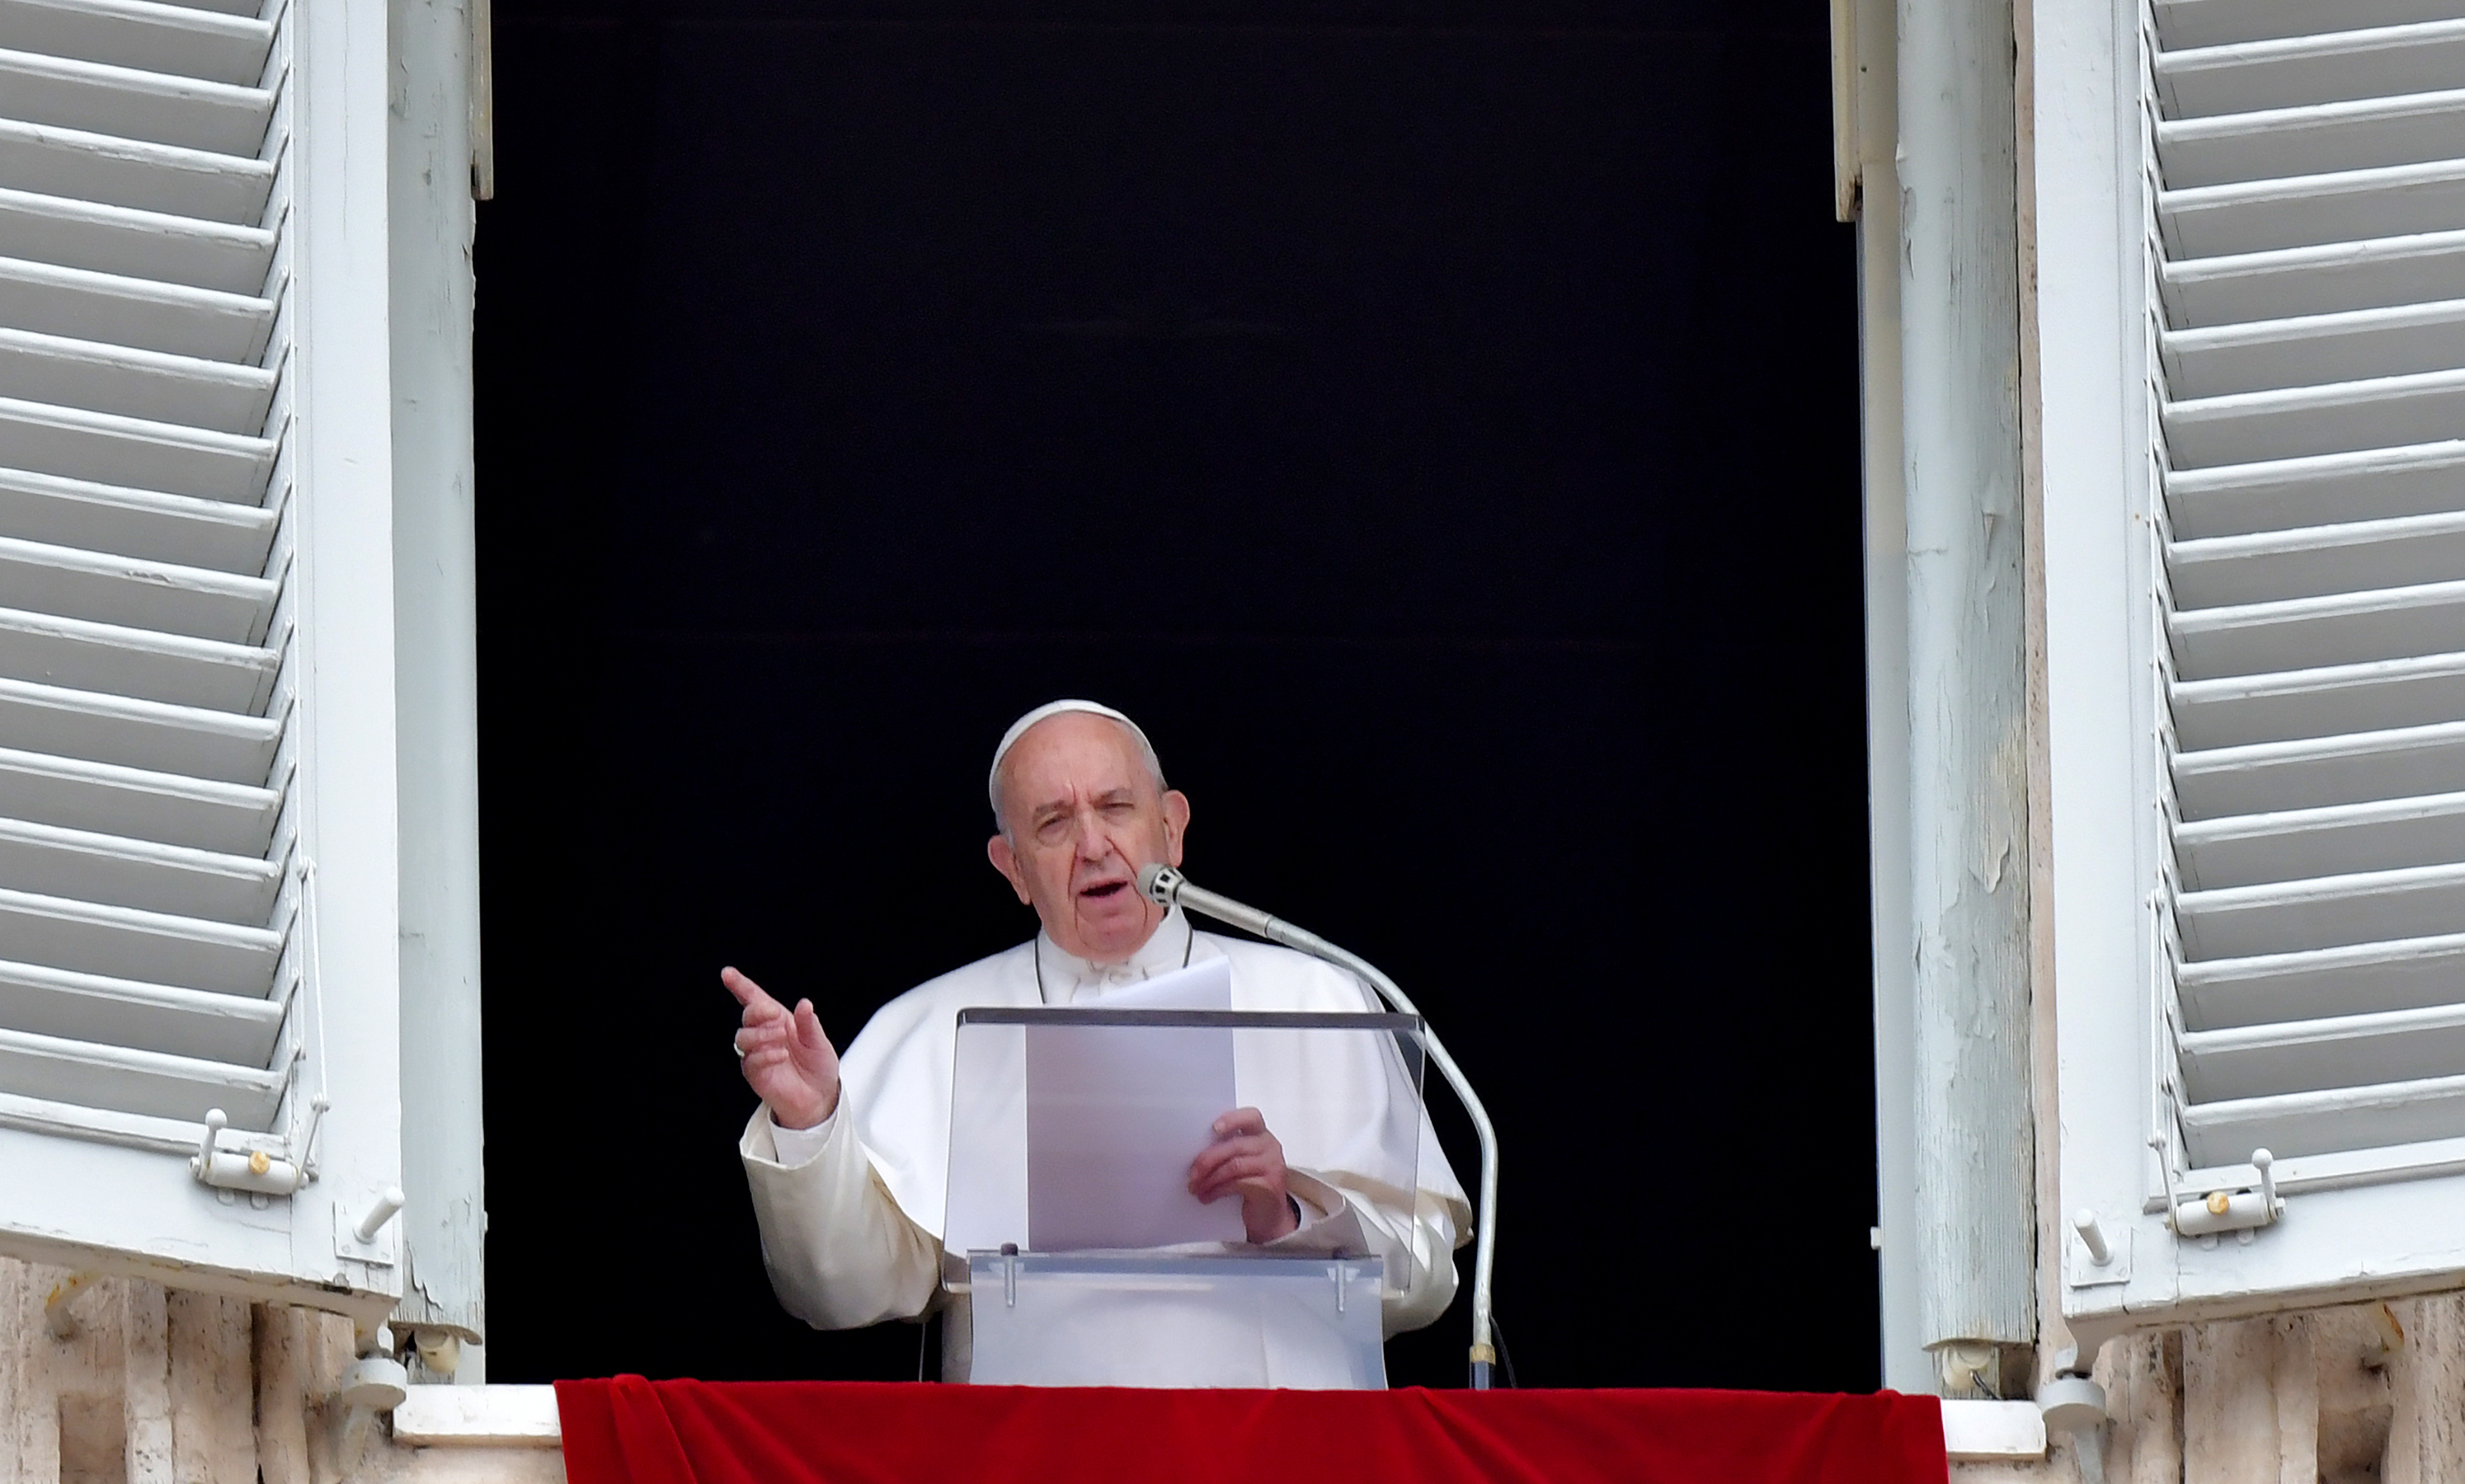 Pope Francis addresses the crowd from the window of the apostolic palace overlooking St Peter's square during the Regina Coeli prayer, on April 28, 2019 in Vatican. (TIZIANA FABI/AFP/Getty Images)